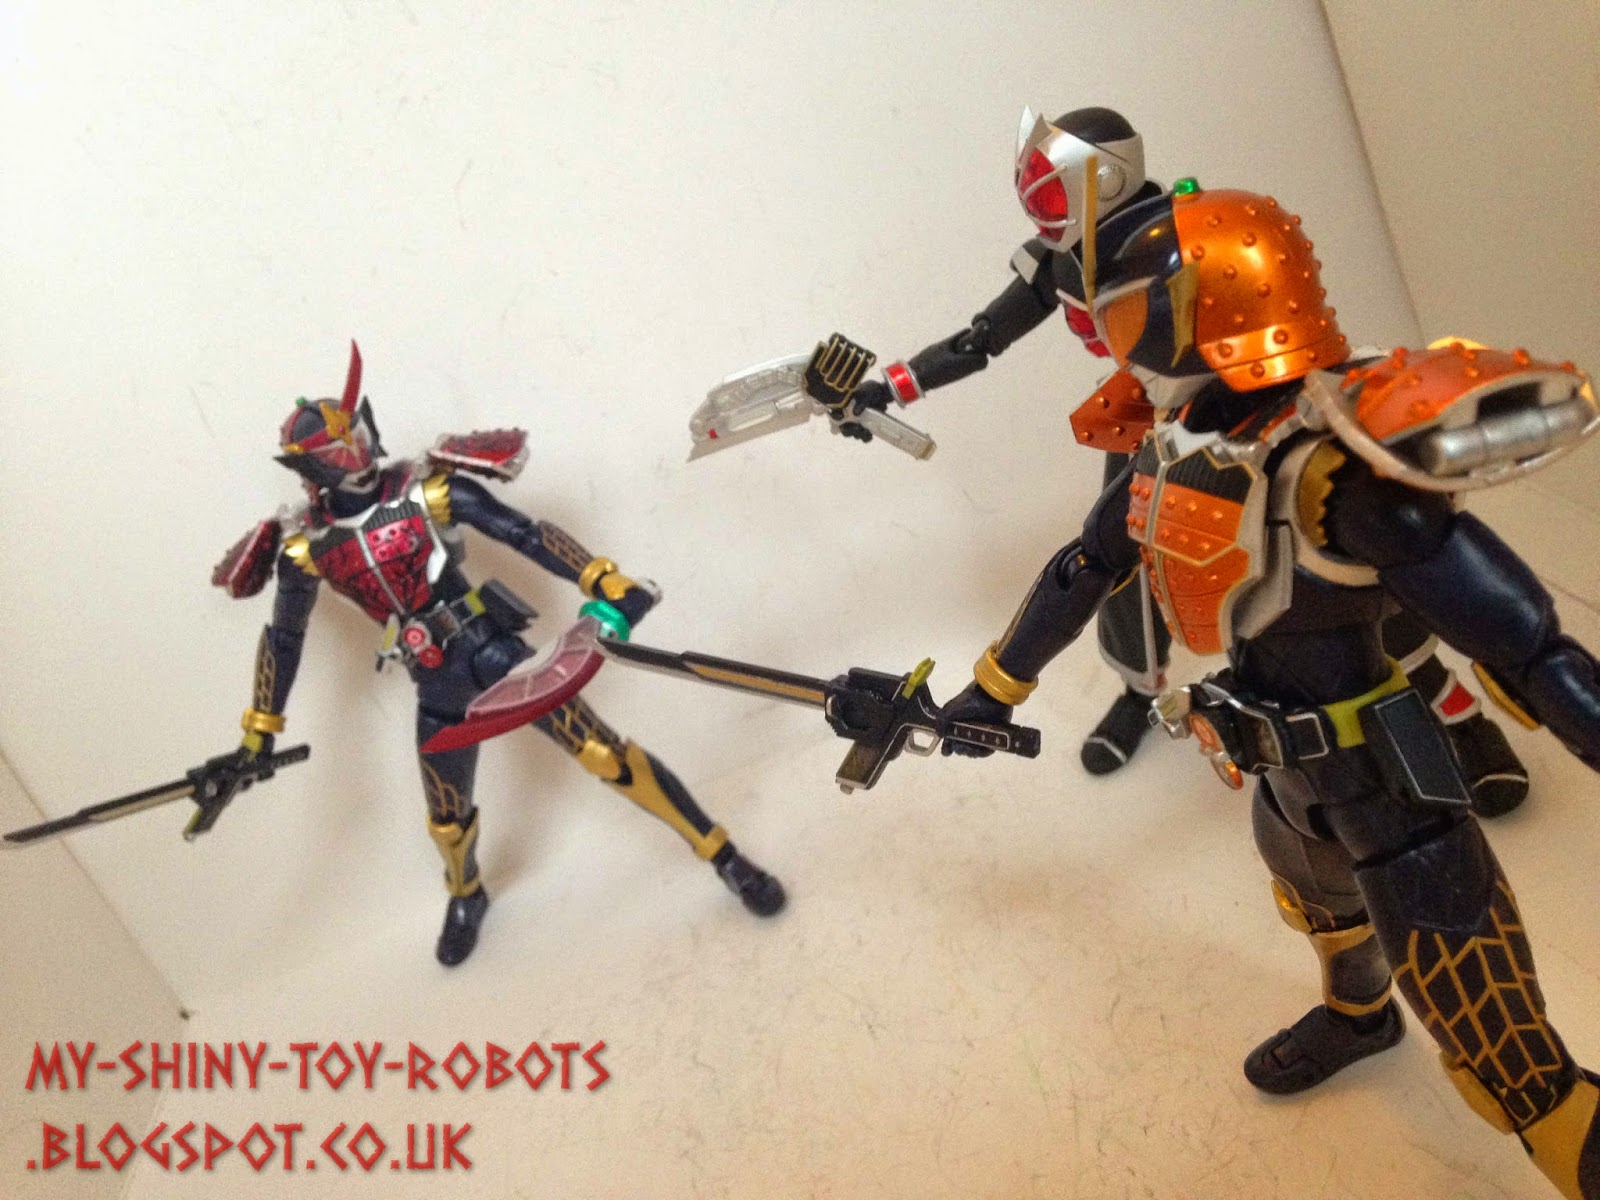 Vs. Gaim and Wizard